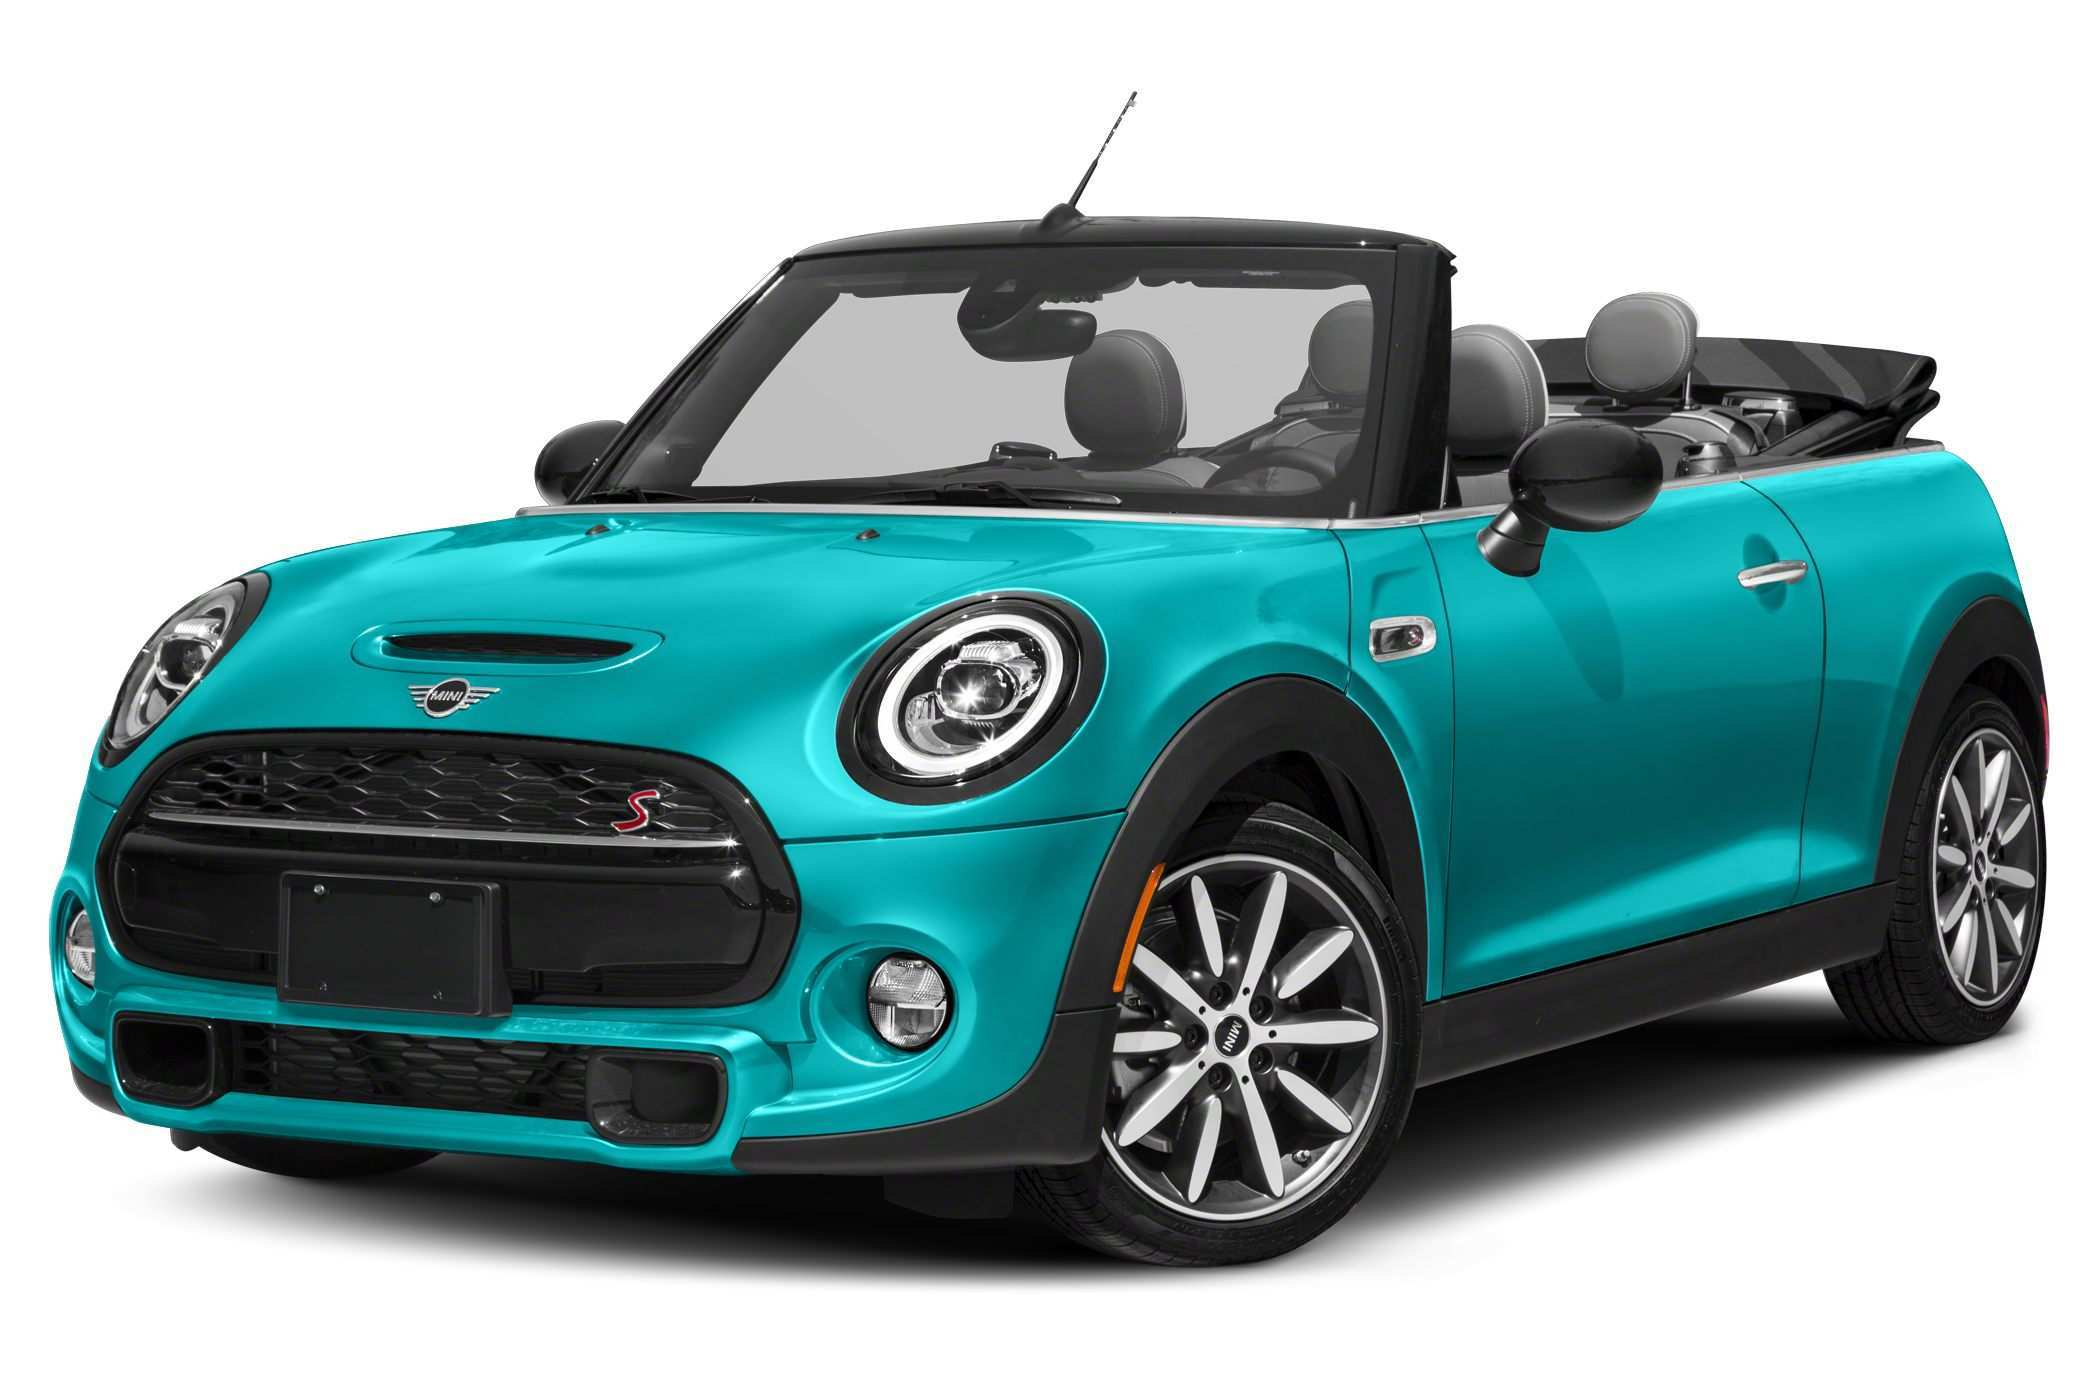 37 Great 2019 Mini Convertible Review Pictures with 2019 Mini Convertible Review